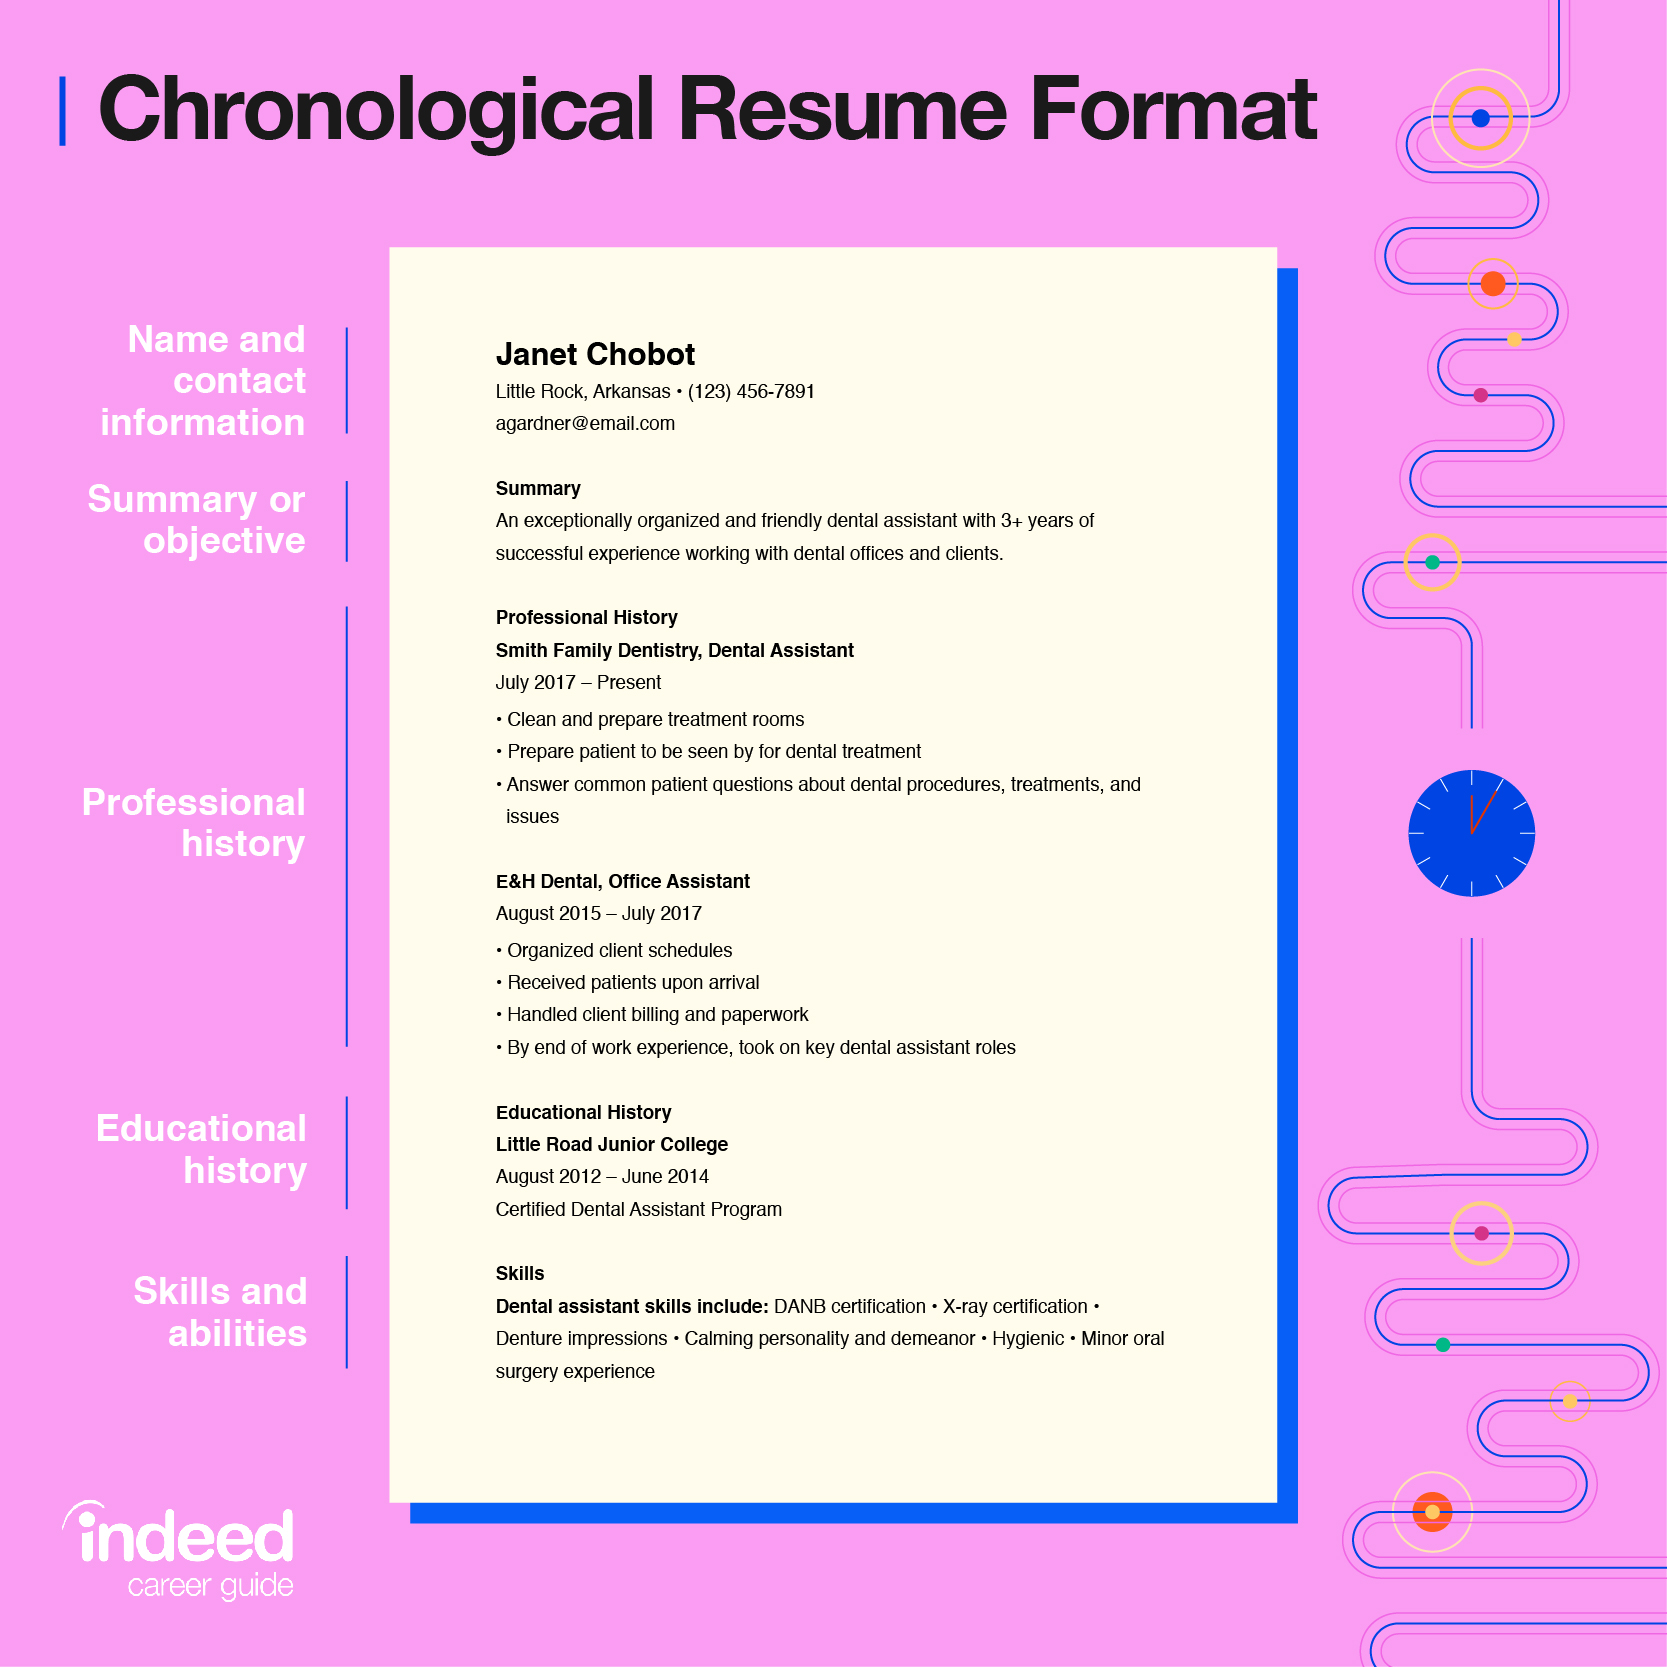 Chronological Resume Tips And Examples